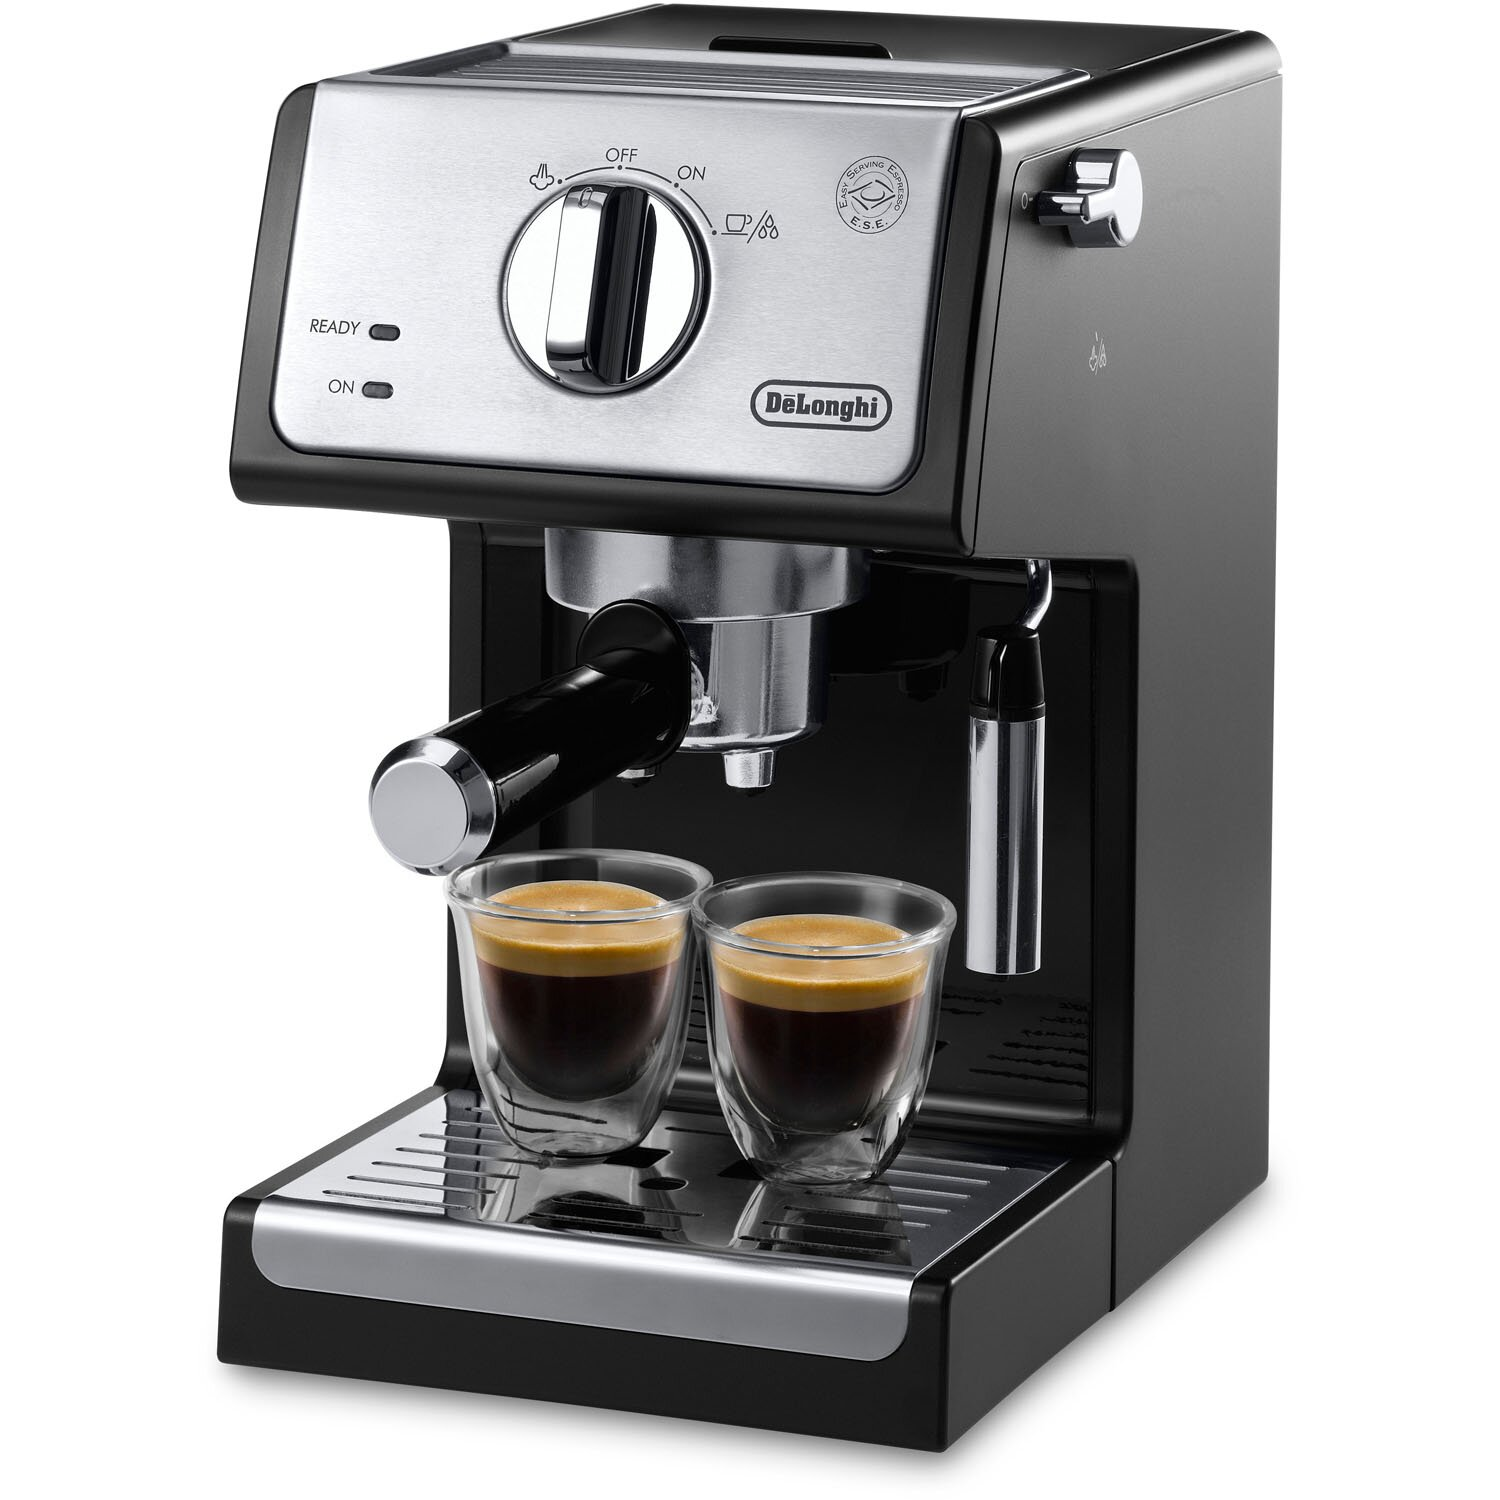 delonghi 15 bar pump coffee espresso maker reviews wayfair. Black Bedroom Furniture Sets. Home Design Ideas